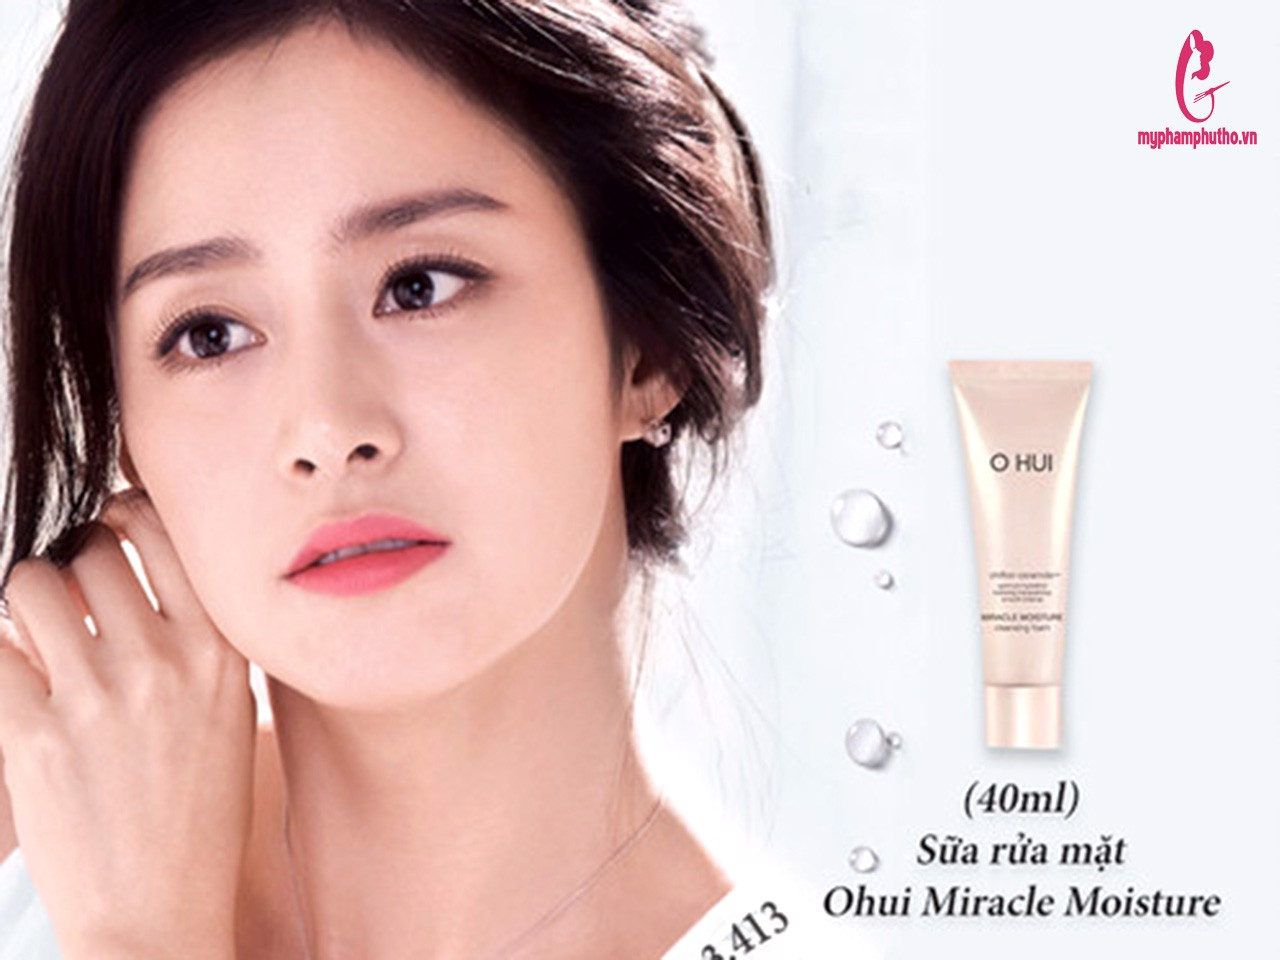 Rửa Mặt Ohui Trắng Hồng Miracle Moisture Cleansing Foam 40ml